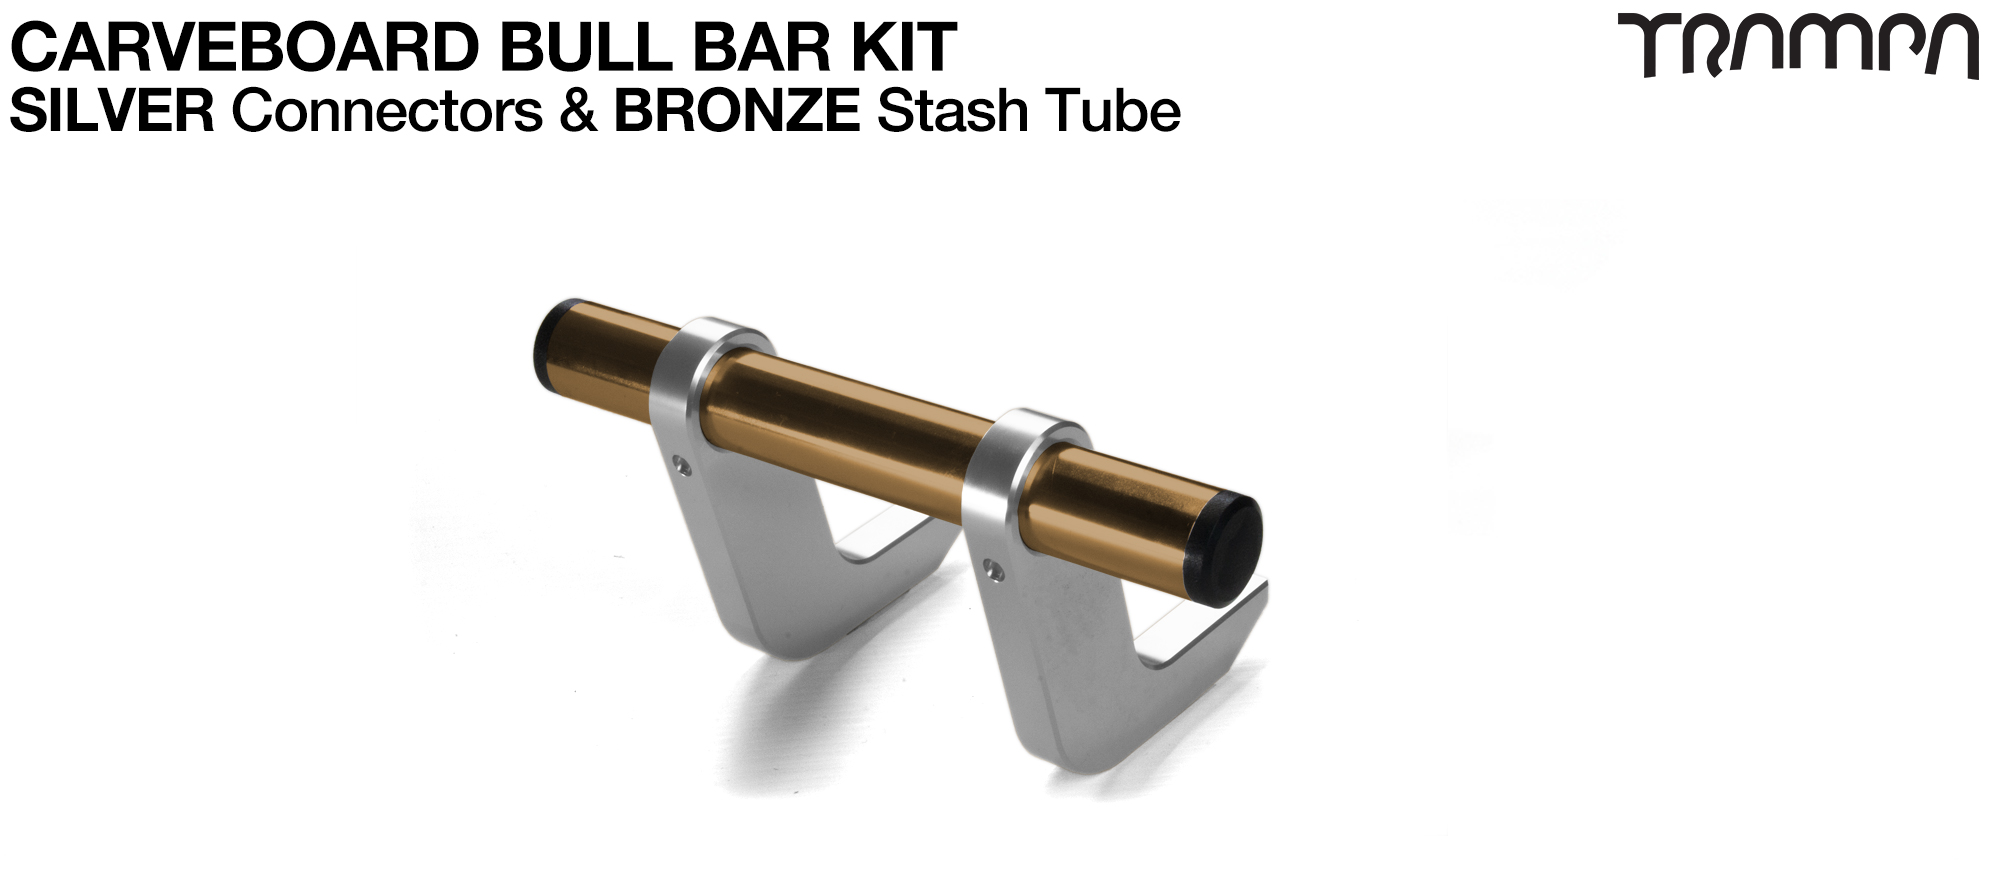 SILVER Uprights & BRONZE Crossbar BULL BARS for CARVE BOARDS using T6 Heat Treated CNC'd Aluminum Clamps, Hollow Aluminium Stash Tubes with Rubber end bungs